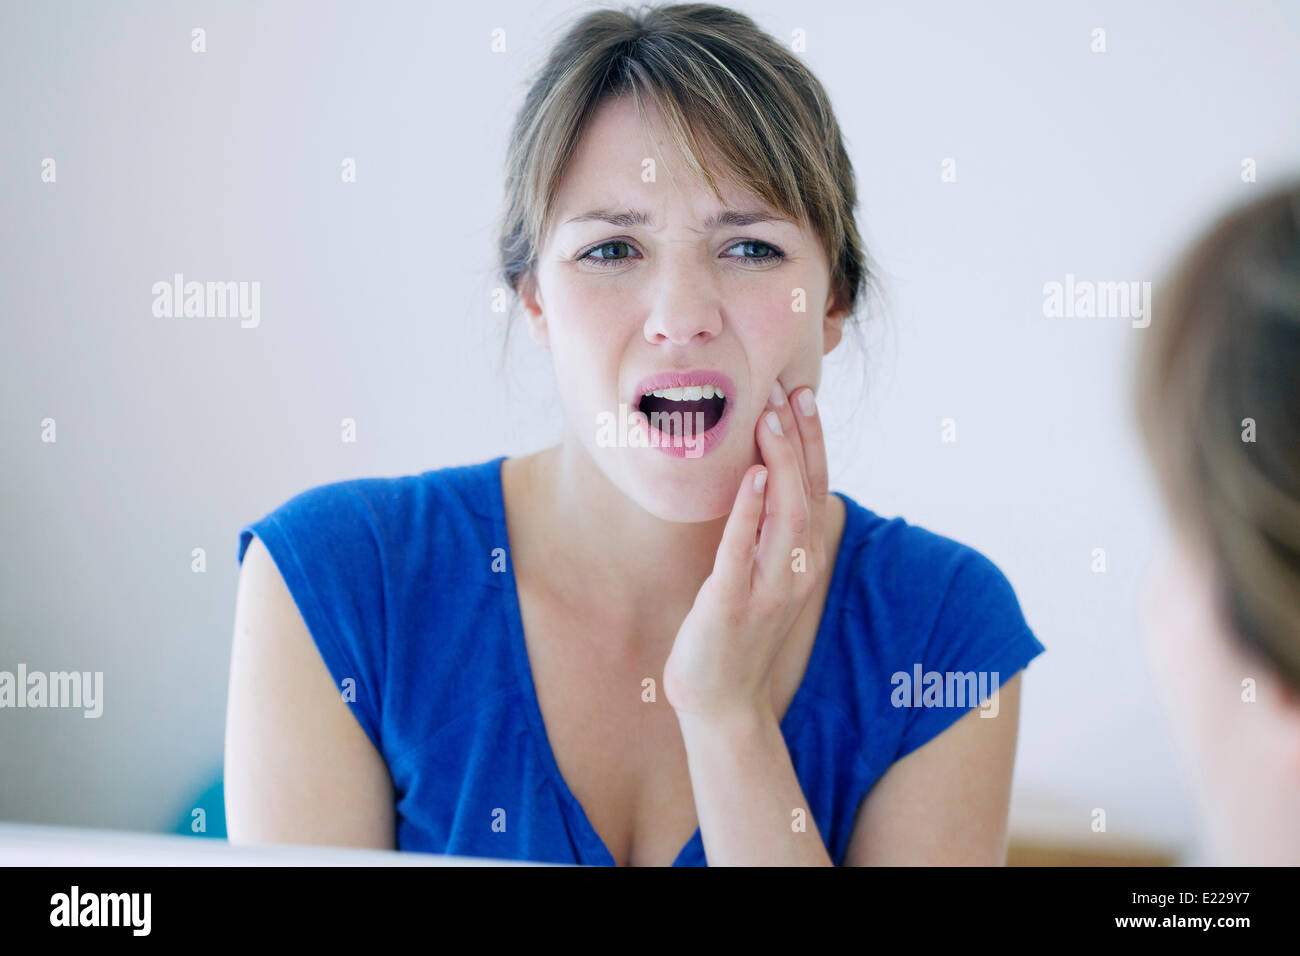 Woman with a toothache - Stock Image